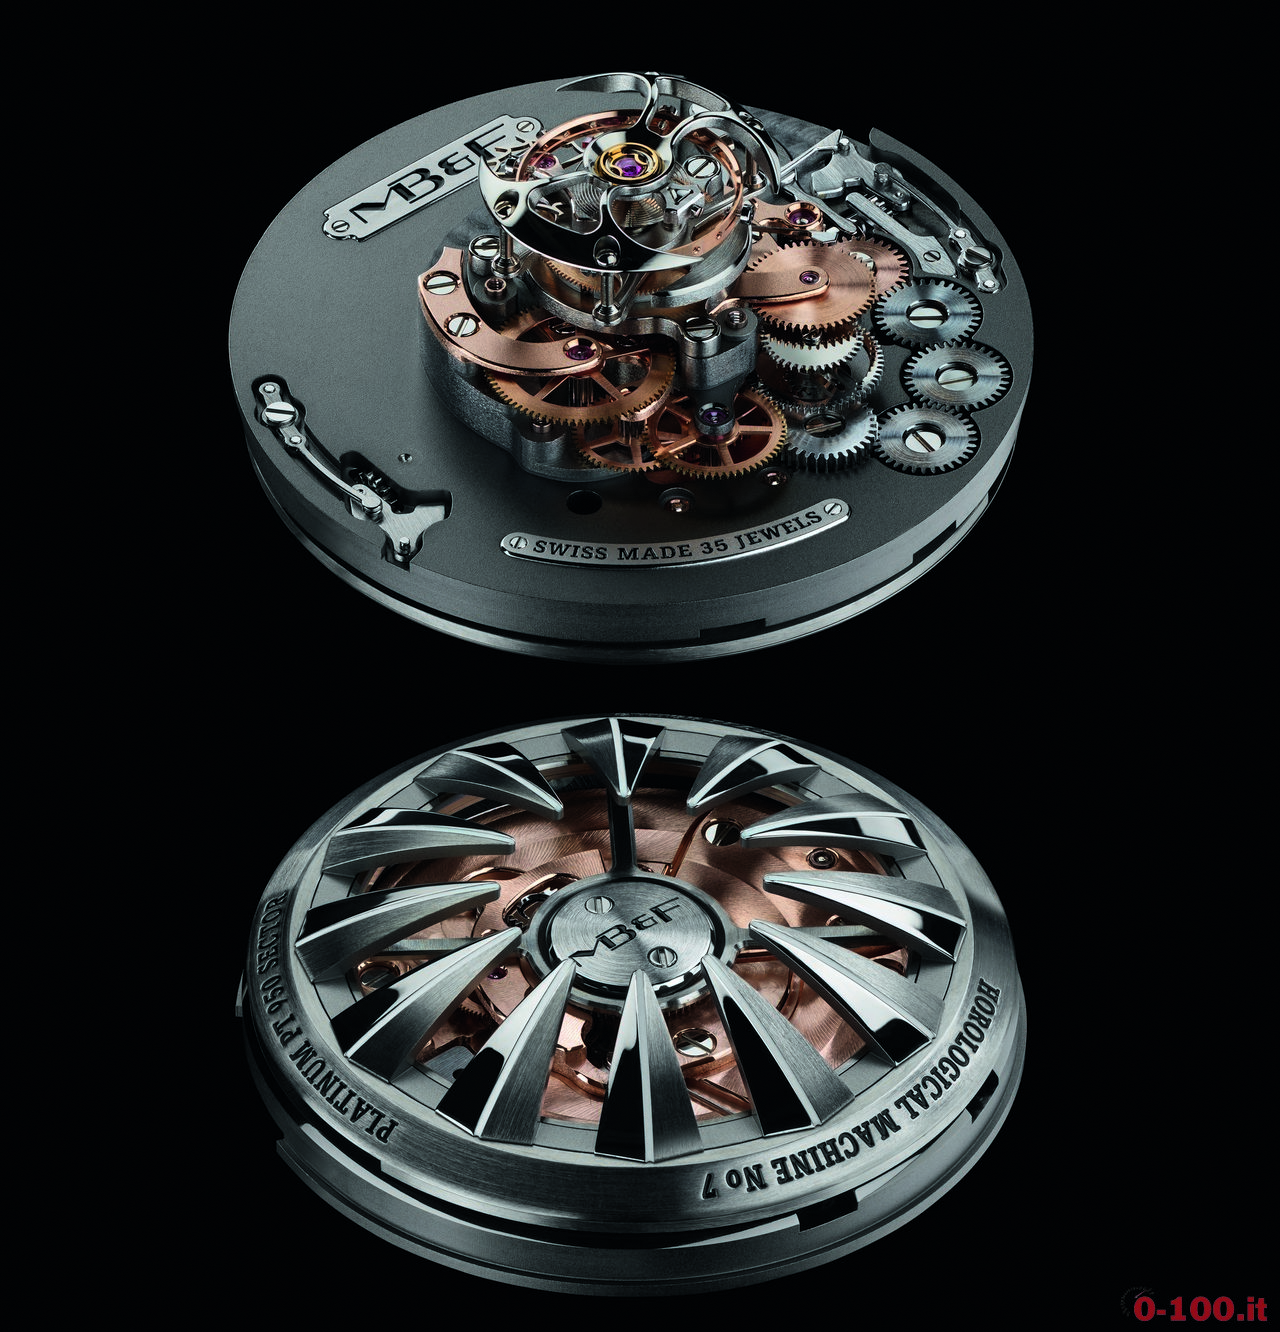 sihh-2017-mbf-horological-machine-n7-aquapod-hm7-aquapod-prezzo-price_0-10018